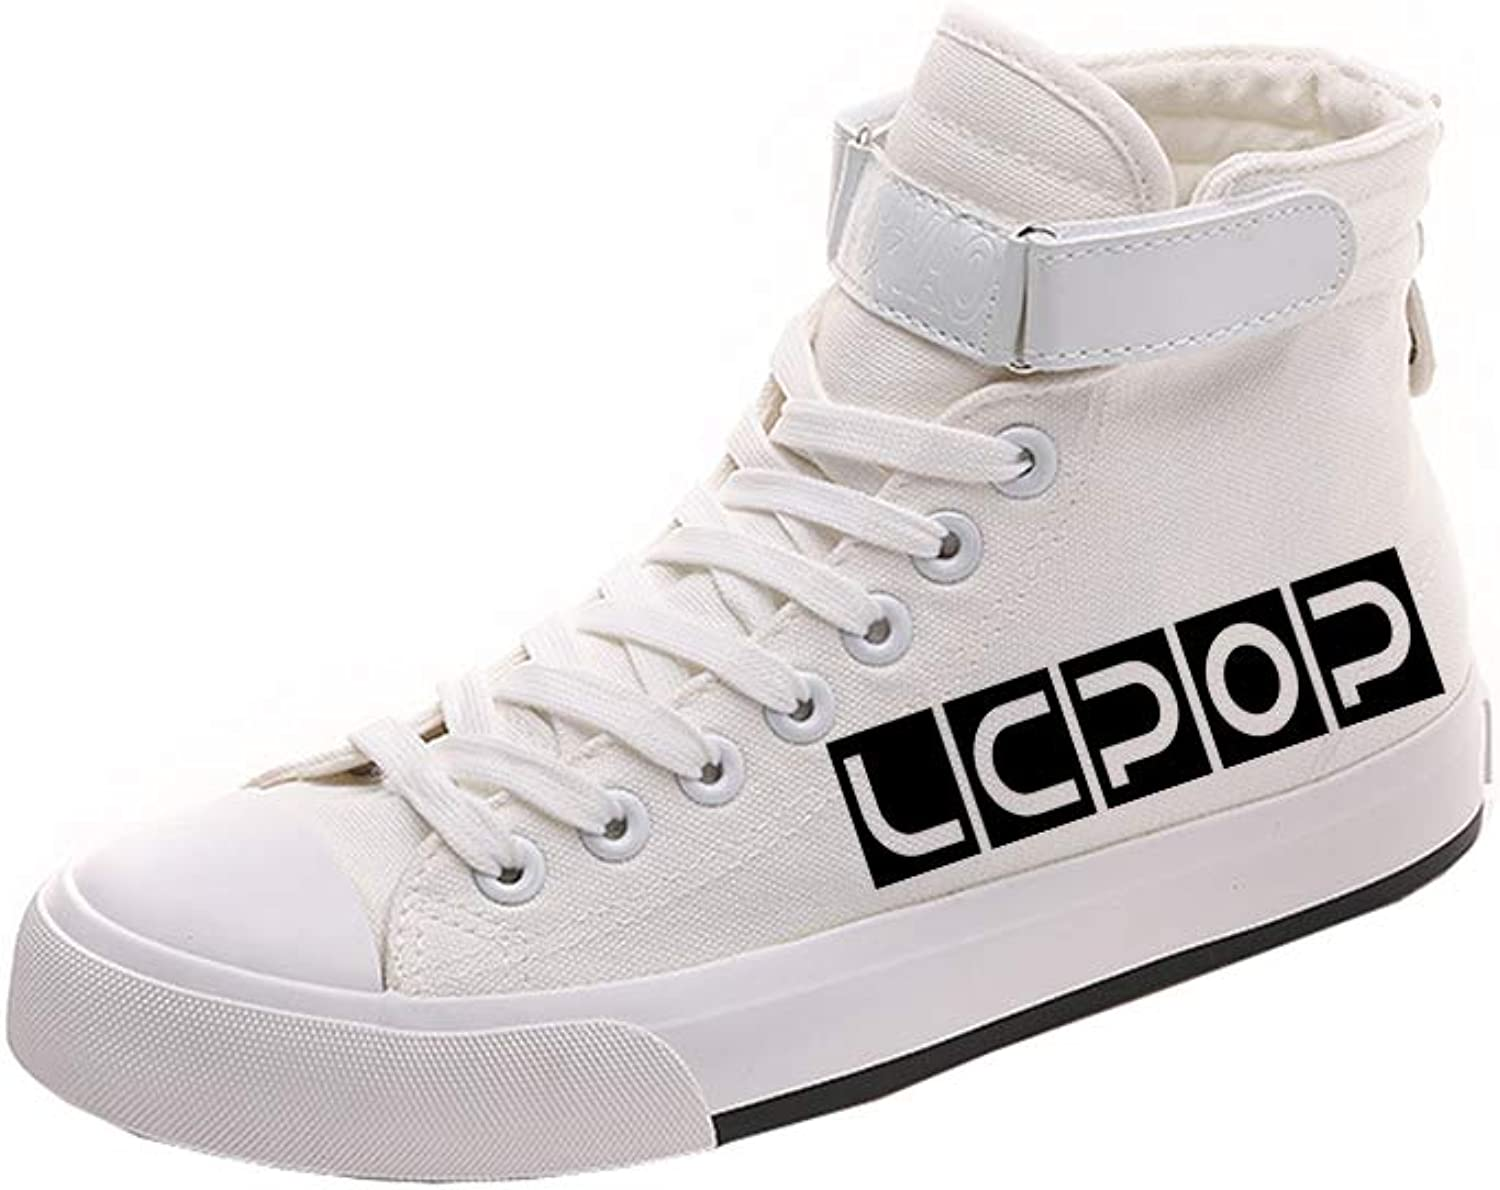 The Legend of Zelda Sneakers Neutral Style Mens Outdoor Sport Sneakers Tennis shoes Walking Wild Athletic Training High-Top shoes shoes